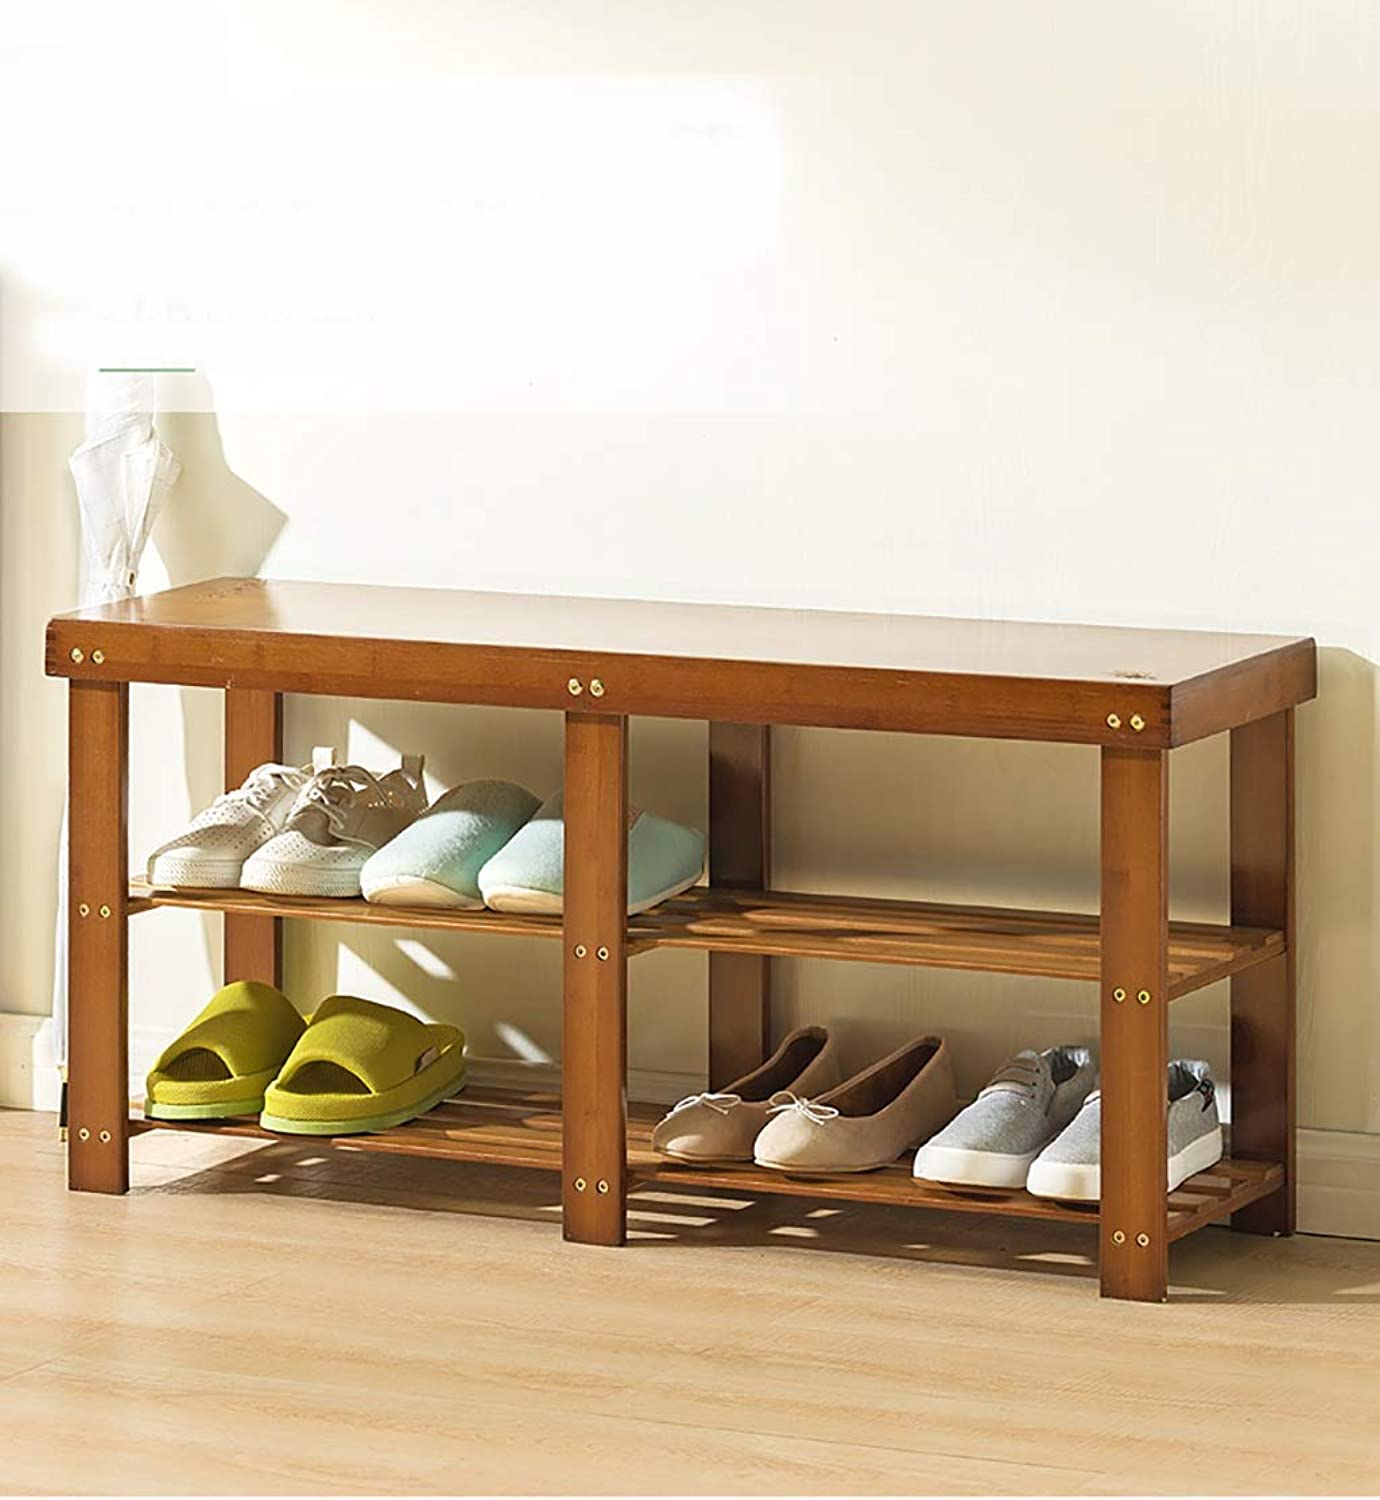 shoes Bench Organizing Rack shoes Rack Multi-Layer dustproof Multi-Purpose shoes Cabinet Home shoes Bench 100  30  45cm